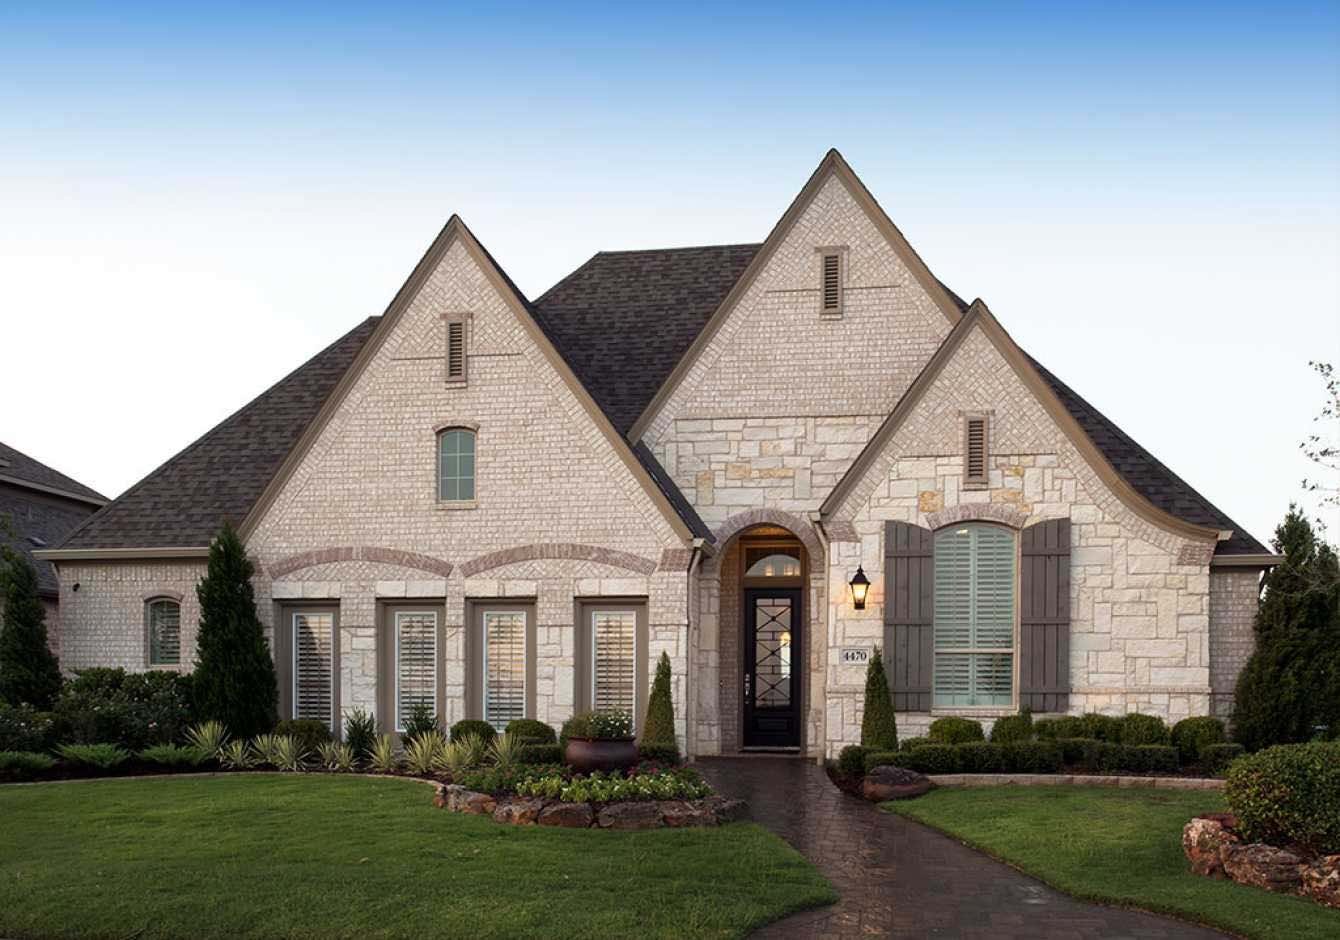 Single Story Homes For Sale in Prosper Tx